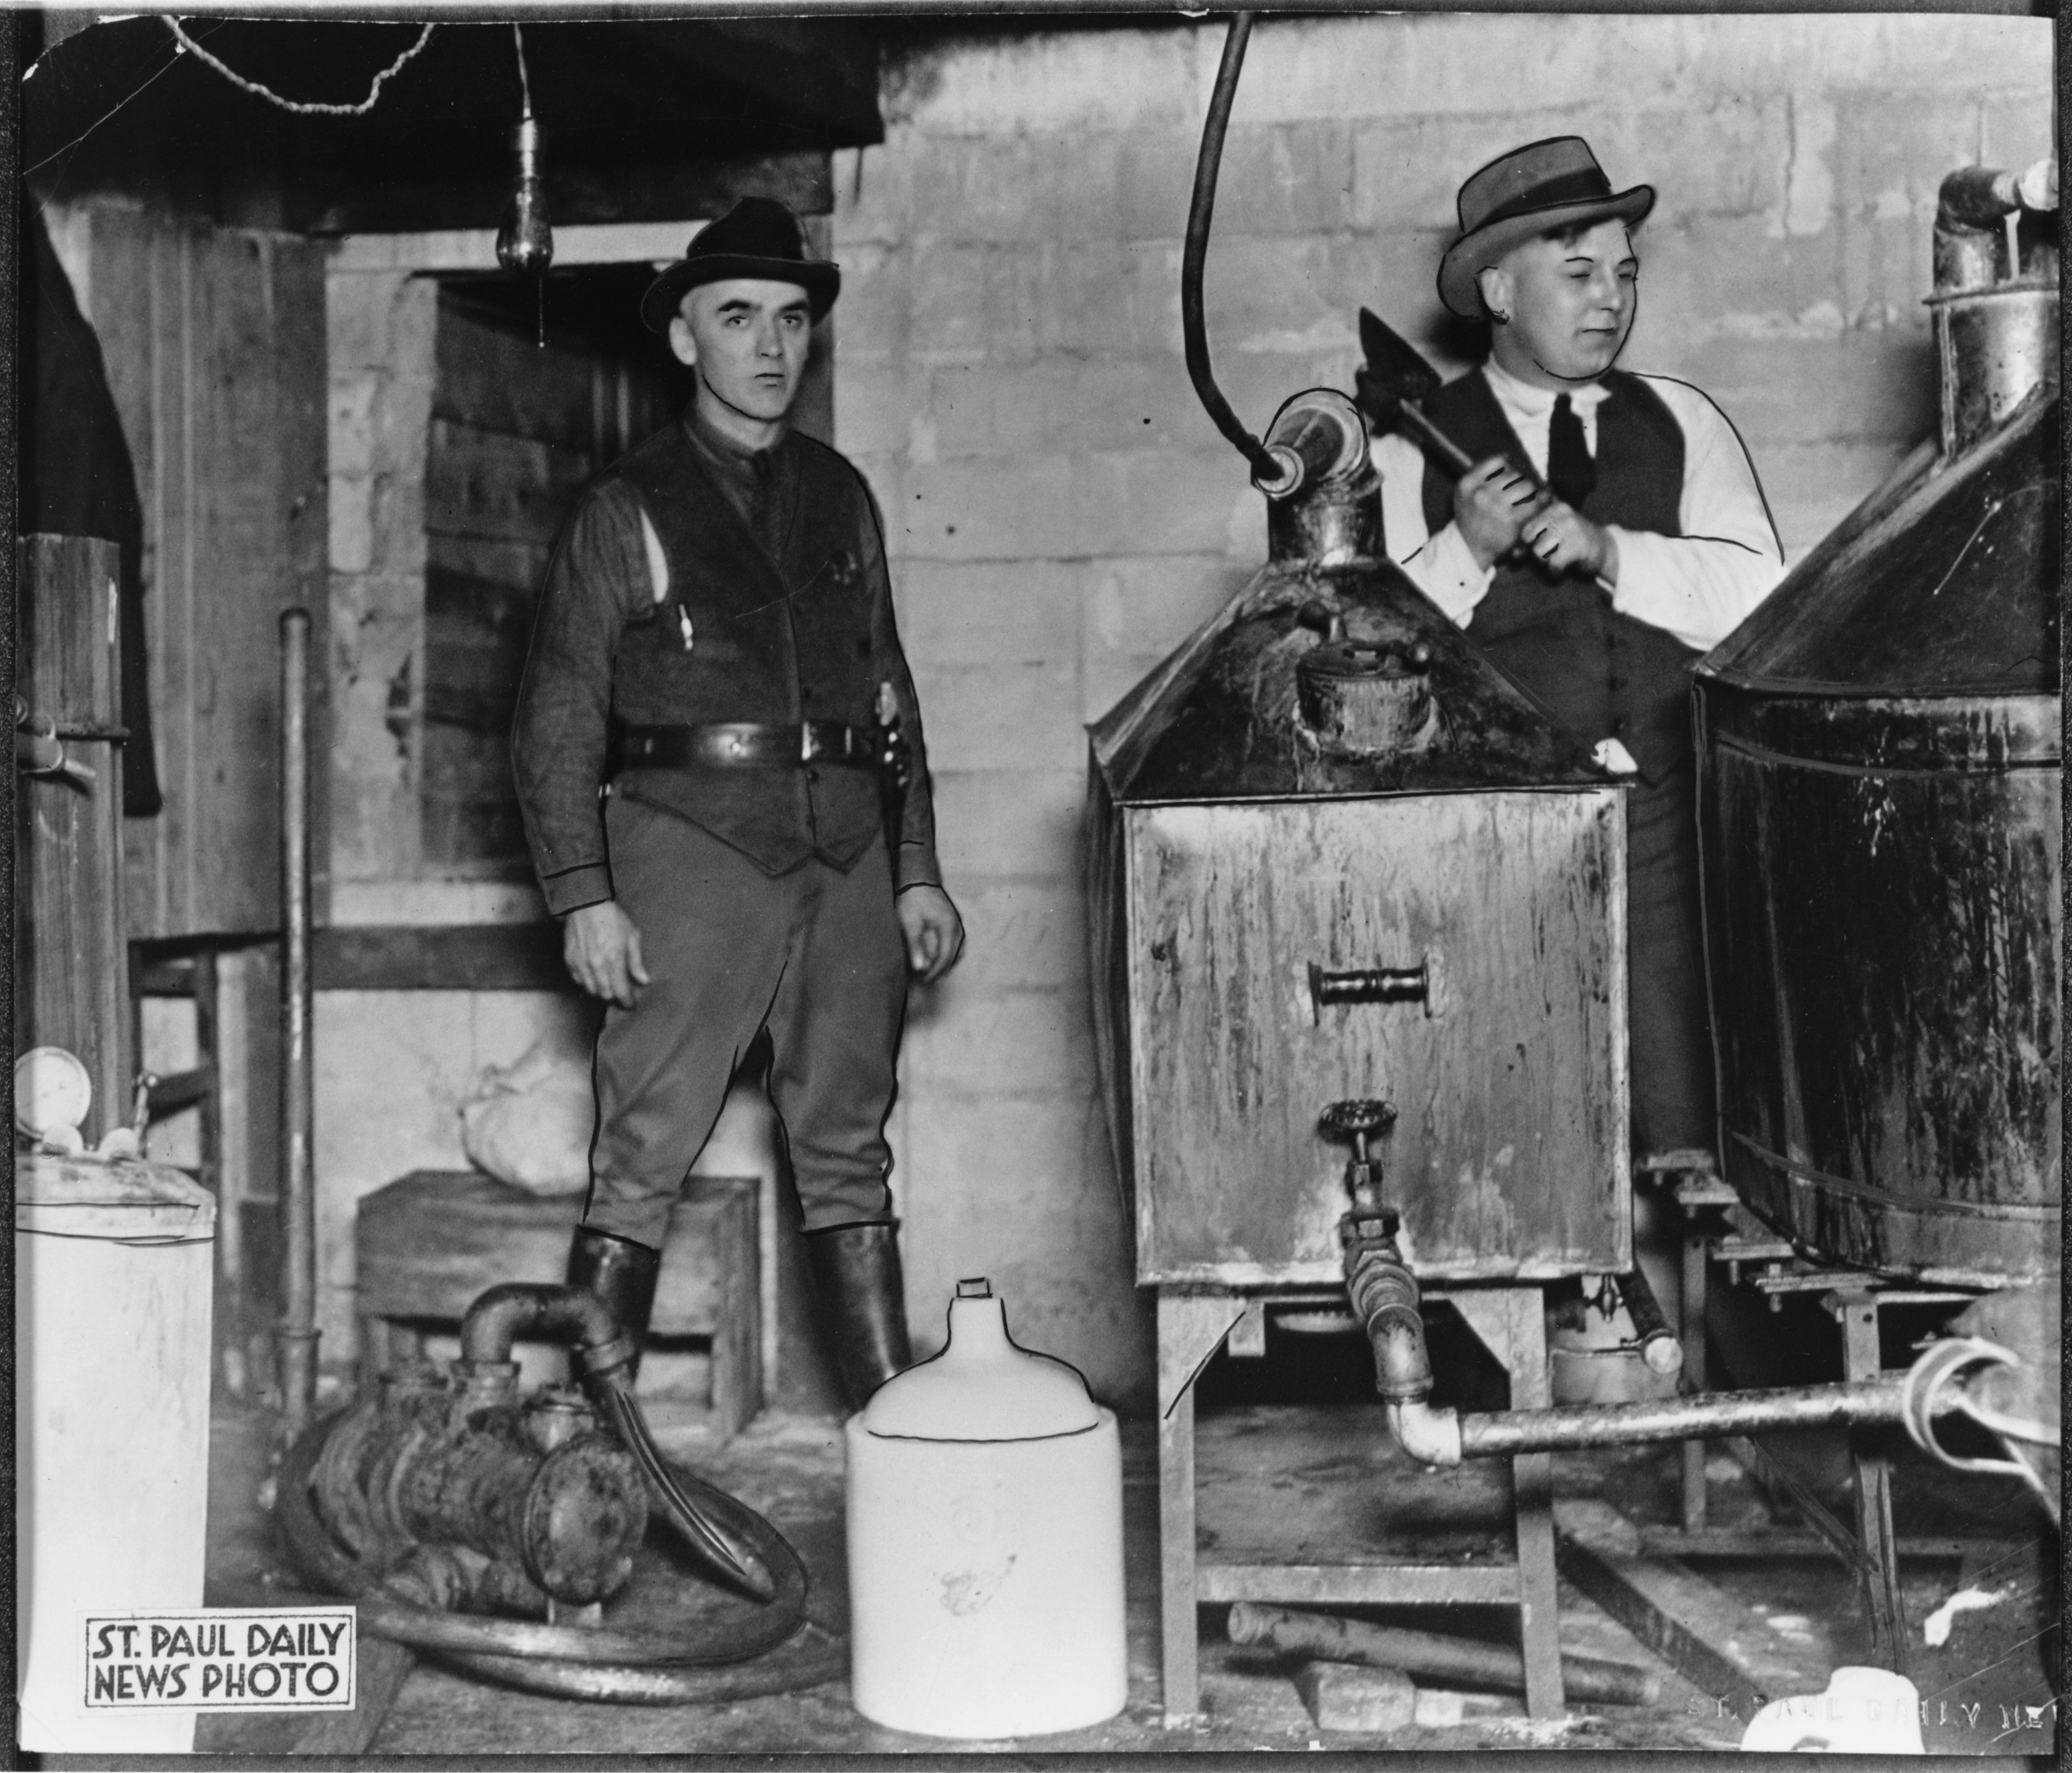 Prohibition raid, St. Paul.